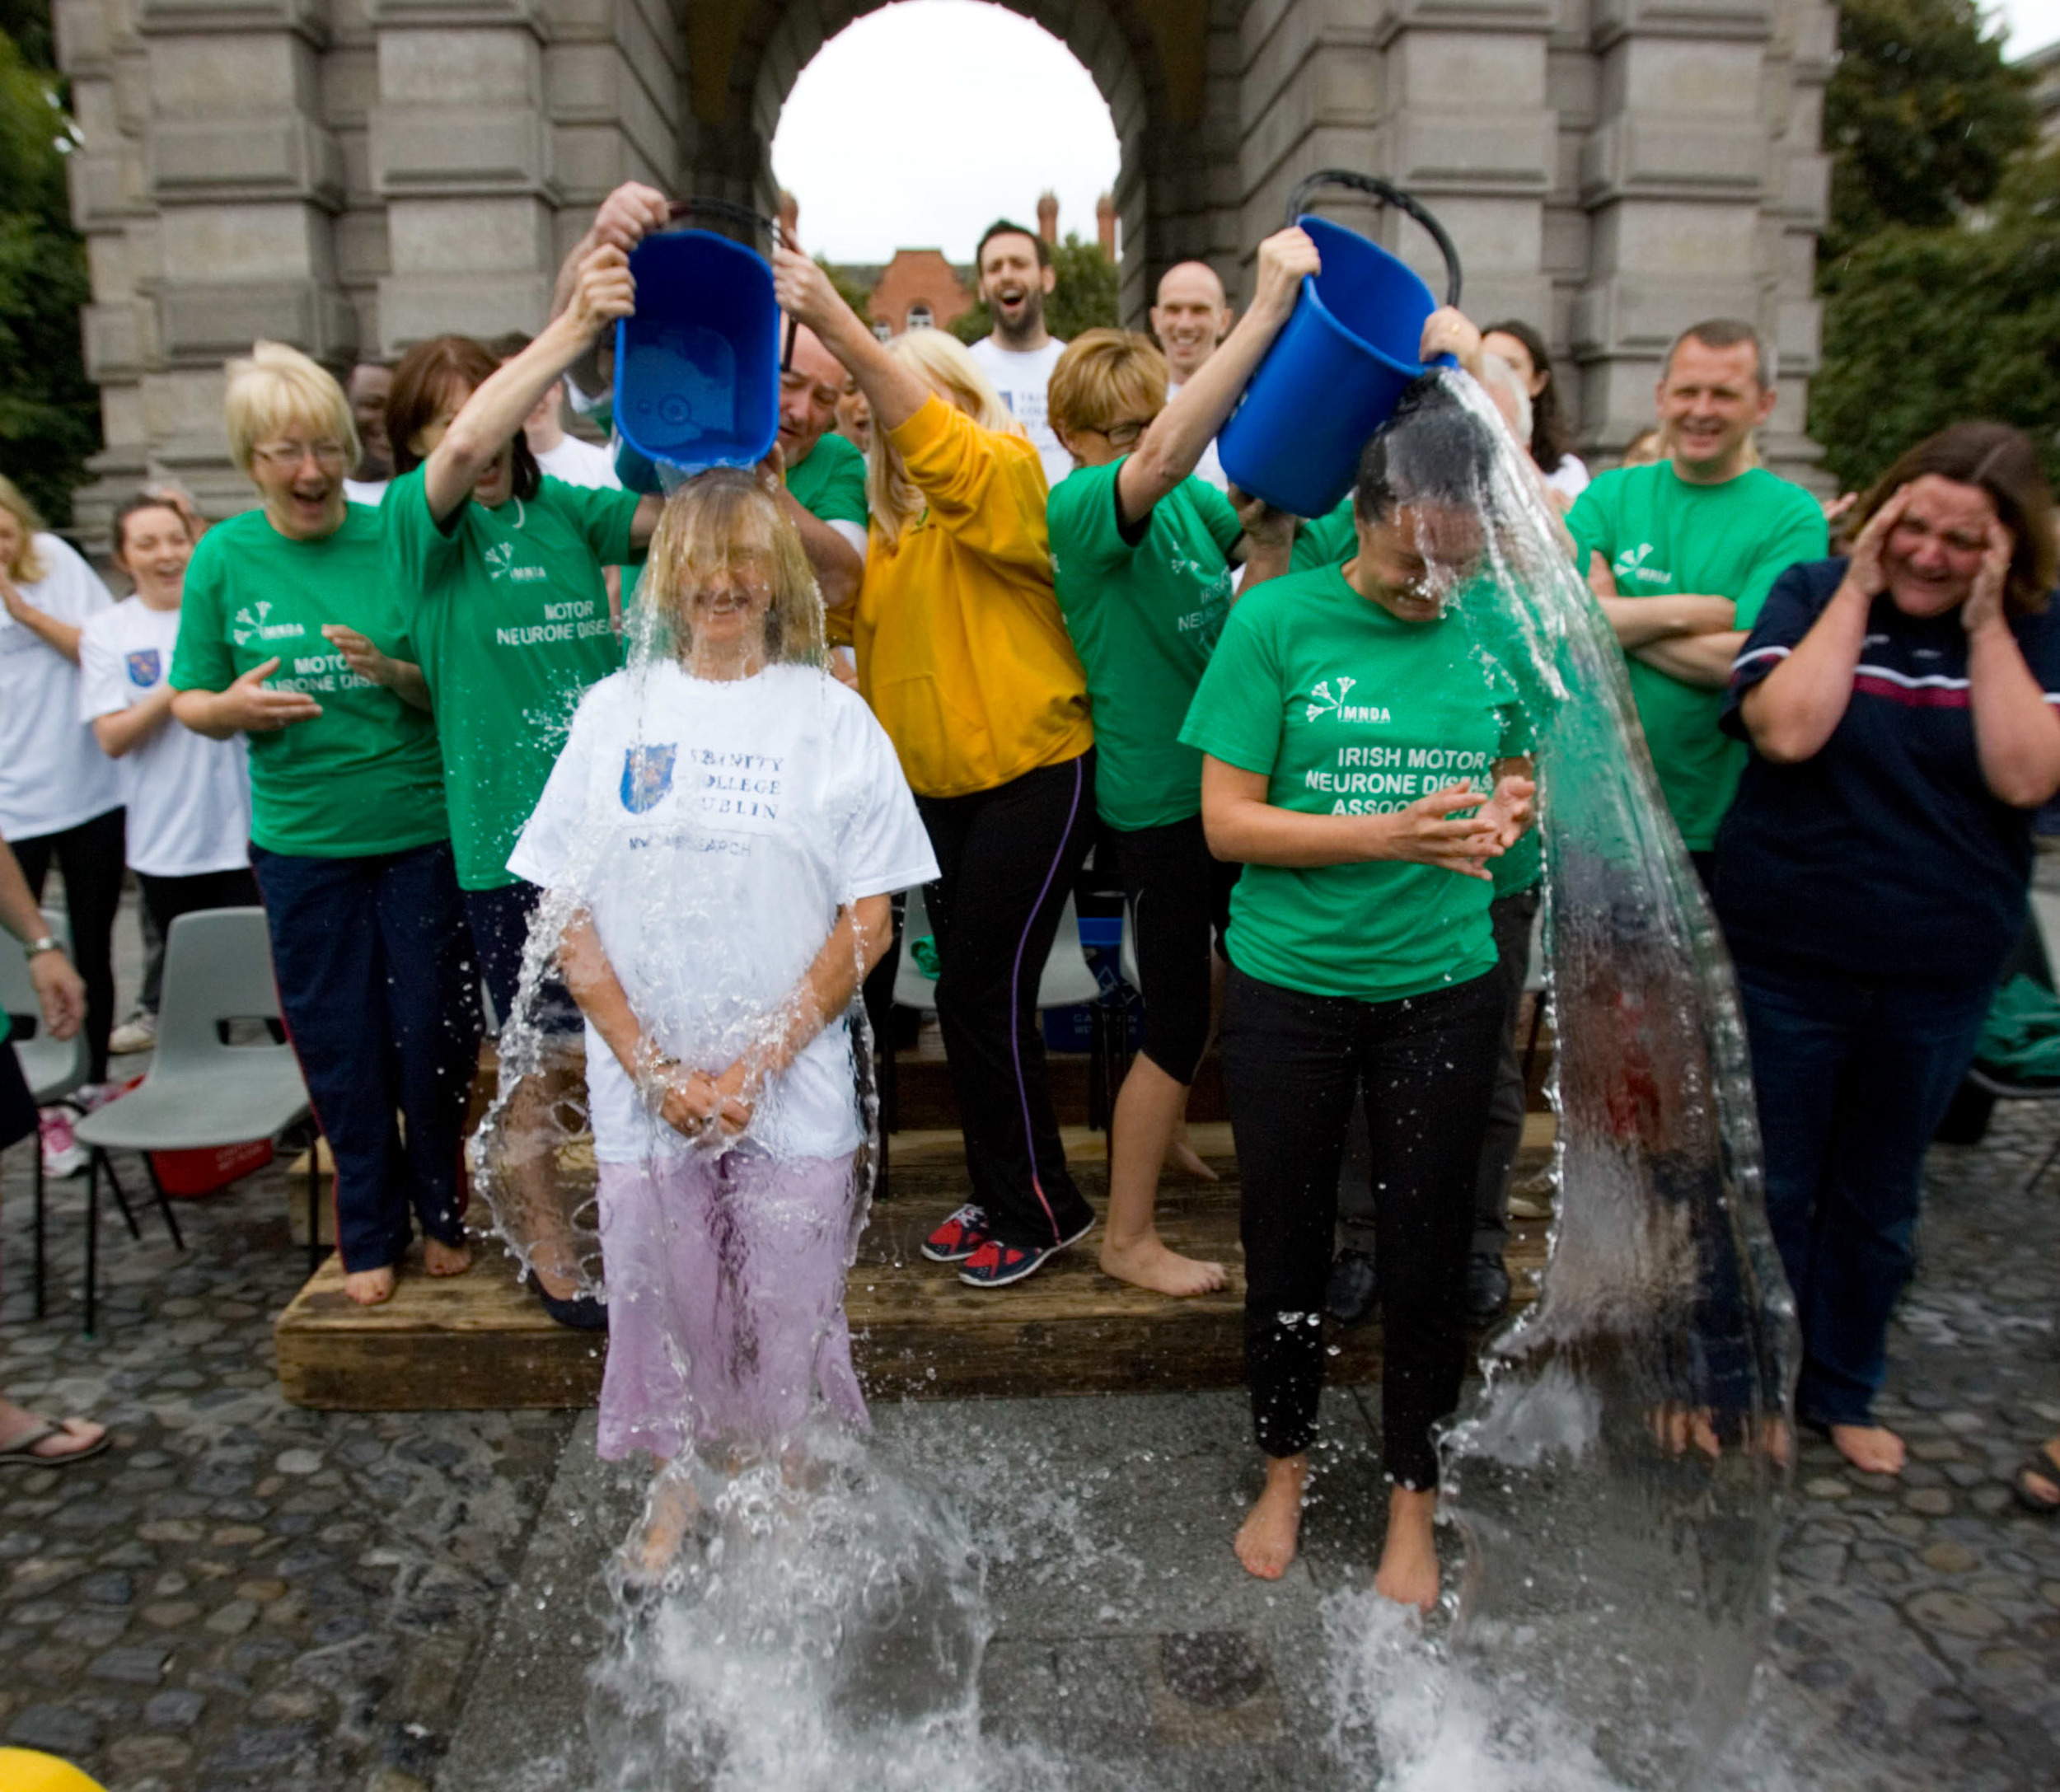 Aisling Farrell, CEO of IMNDA completing the Ice Bucket Challenge in Stephen's Green, Dublin.Image courtesy of IMNDA.